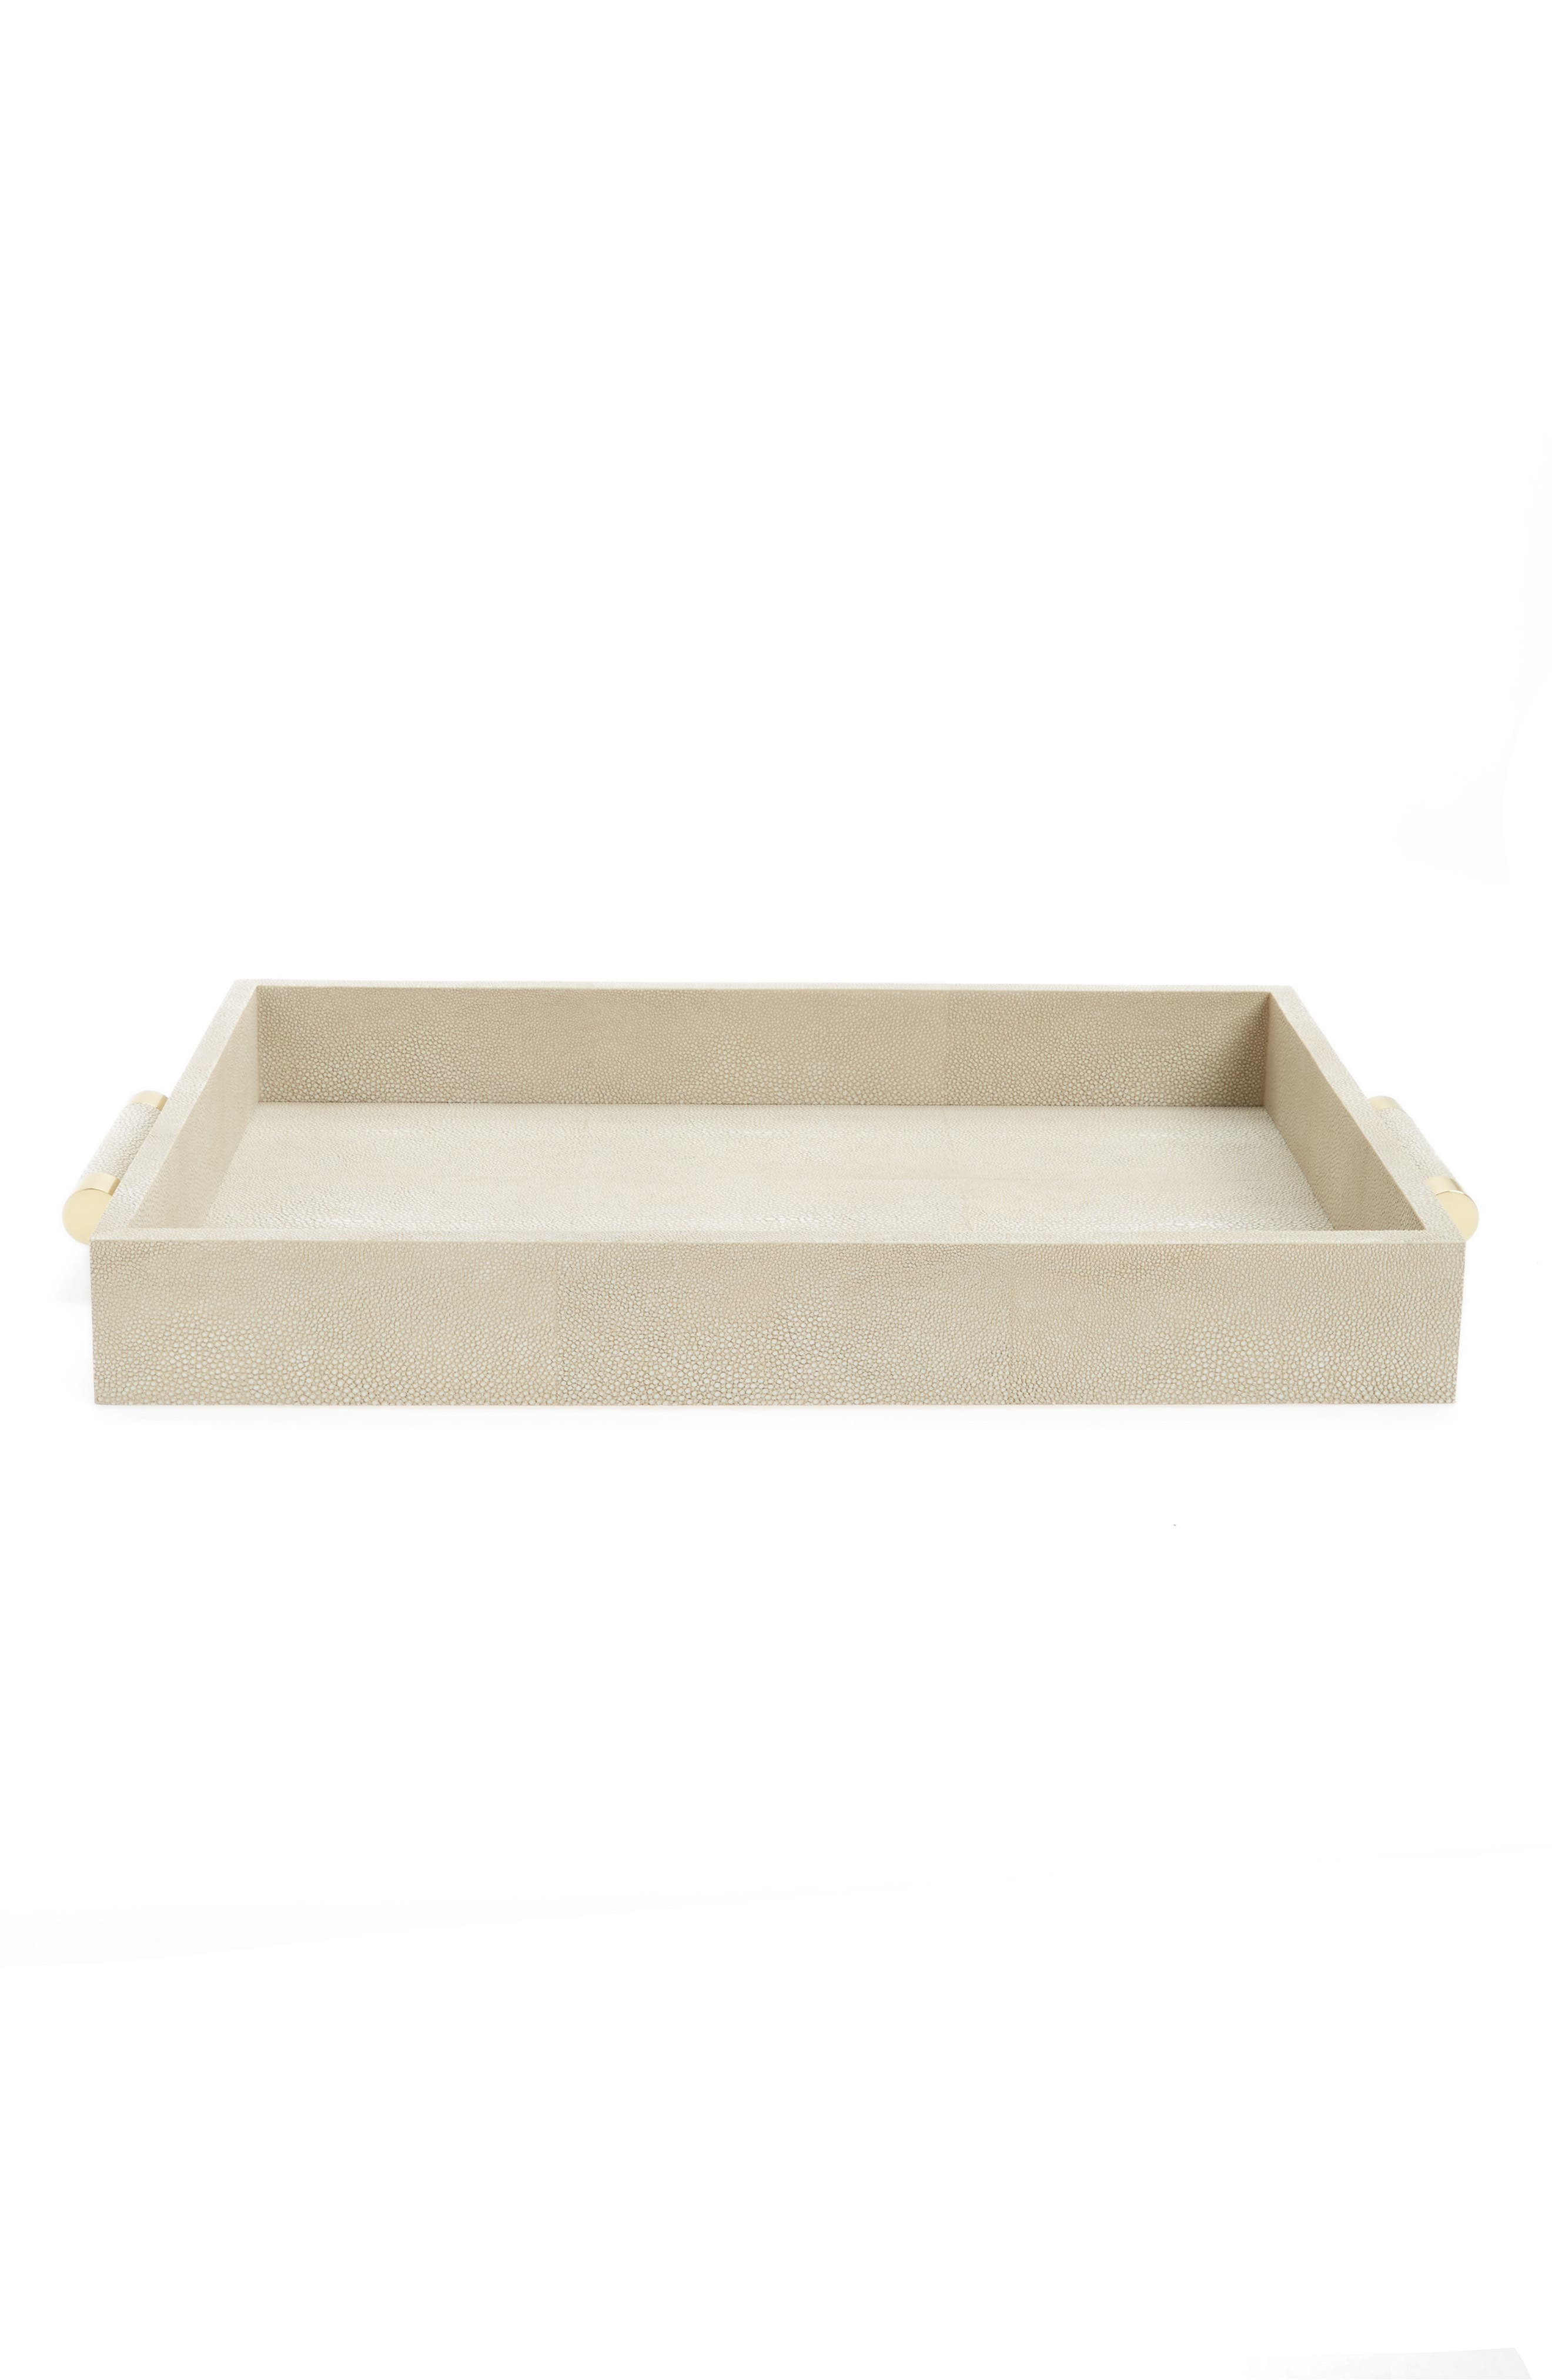 Alternate Image 1 Selected - AERIN Shagreen Serving Tray